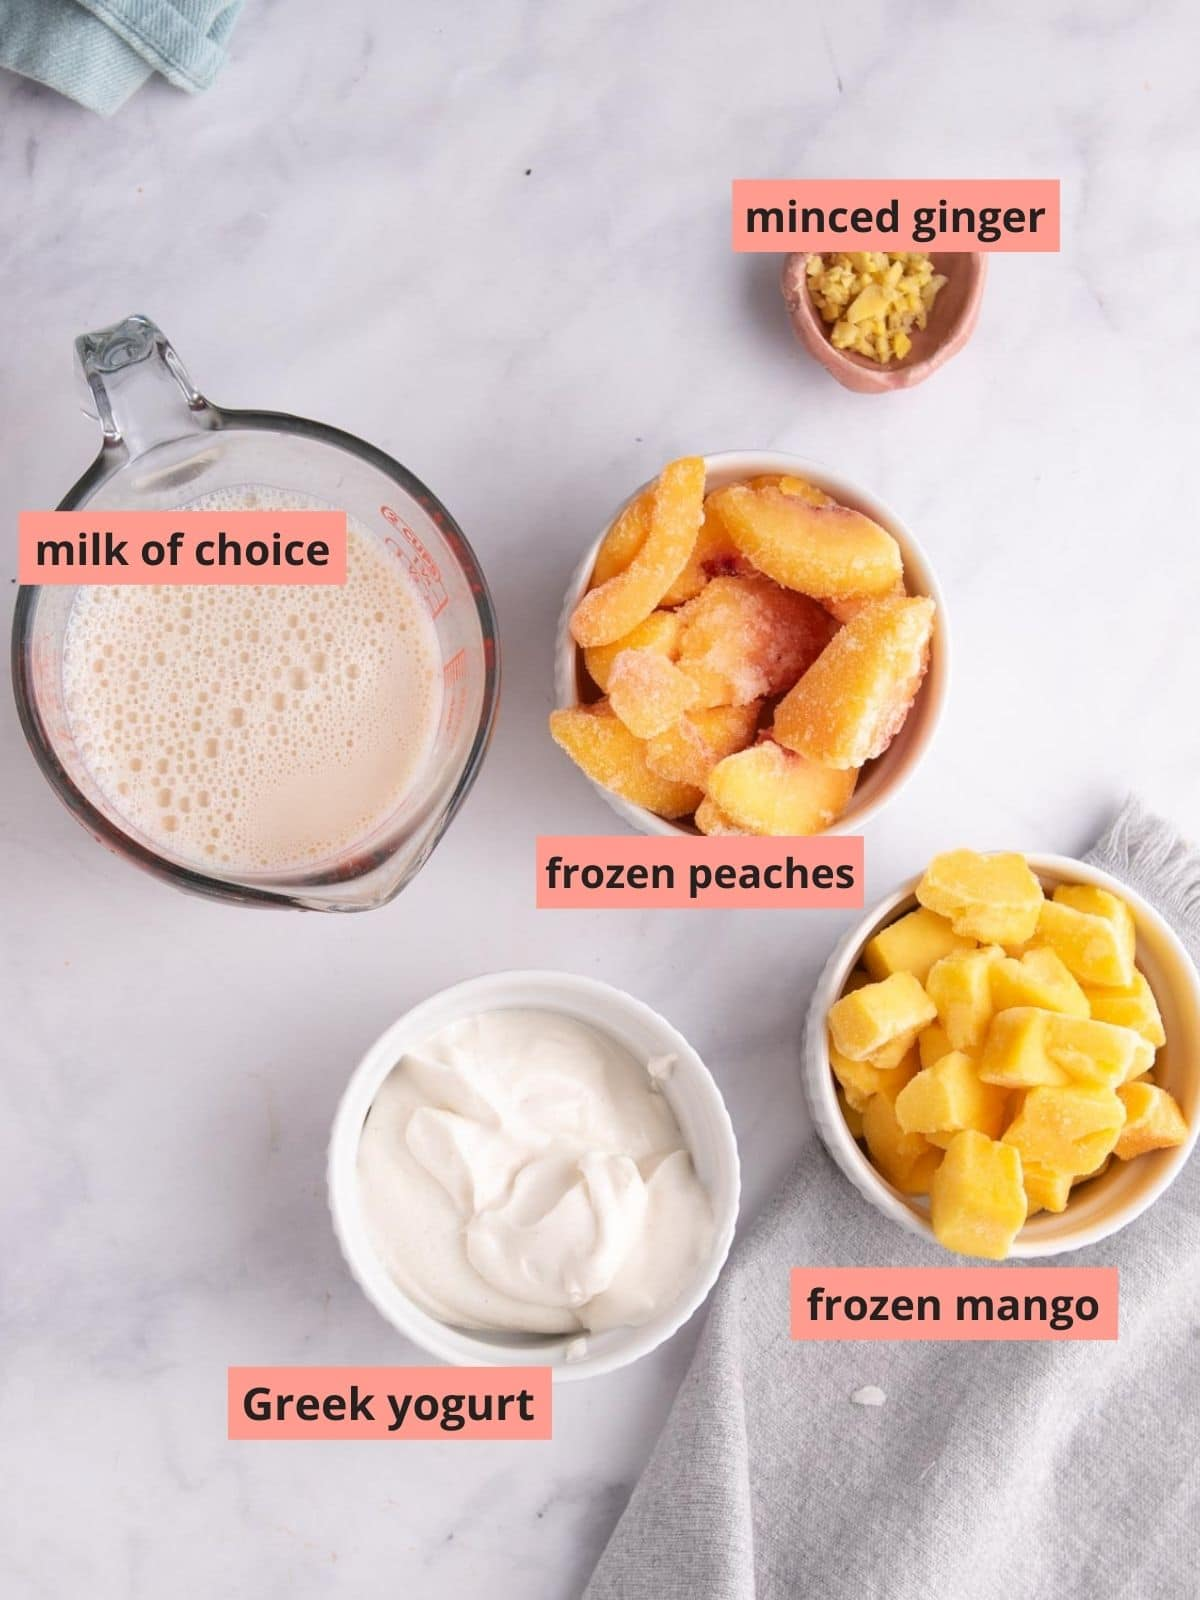 Labeled ingredients used to make peach smoothies